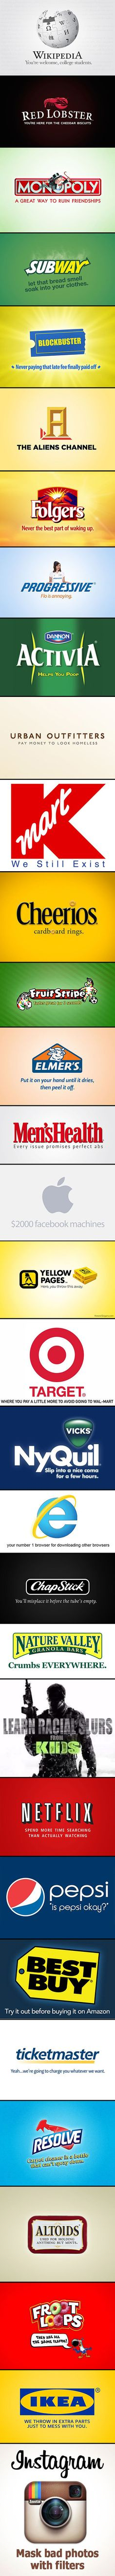 If company logos and slogans were honest... (This is awesome!) COULD NOT STOP LAUGHING